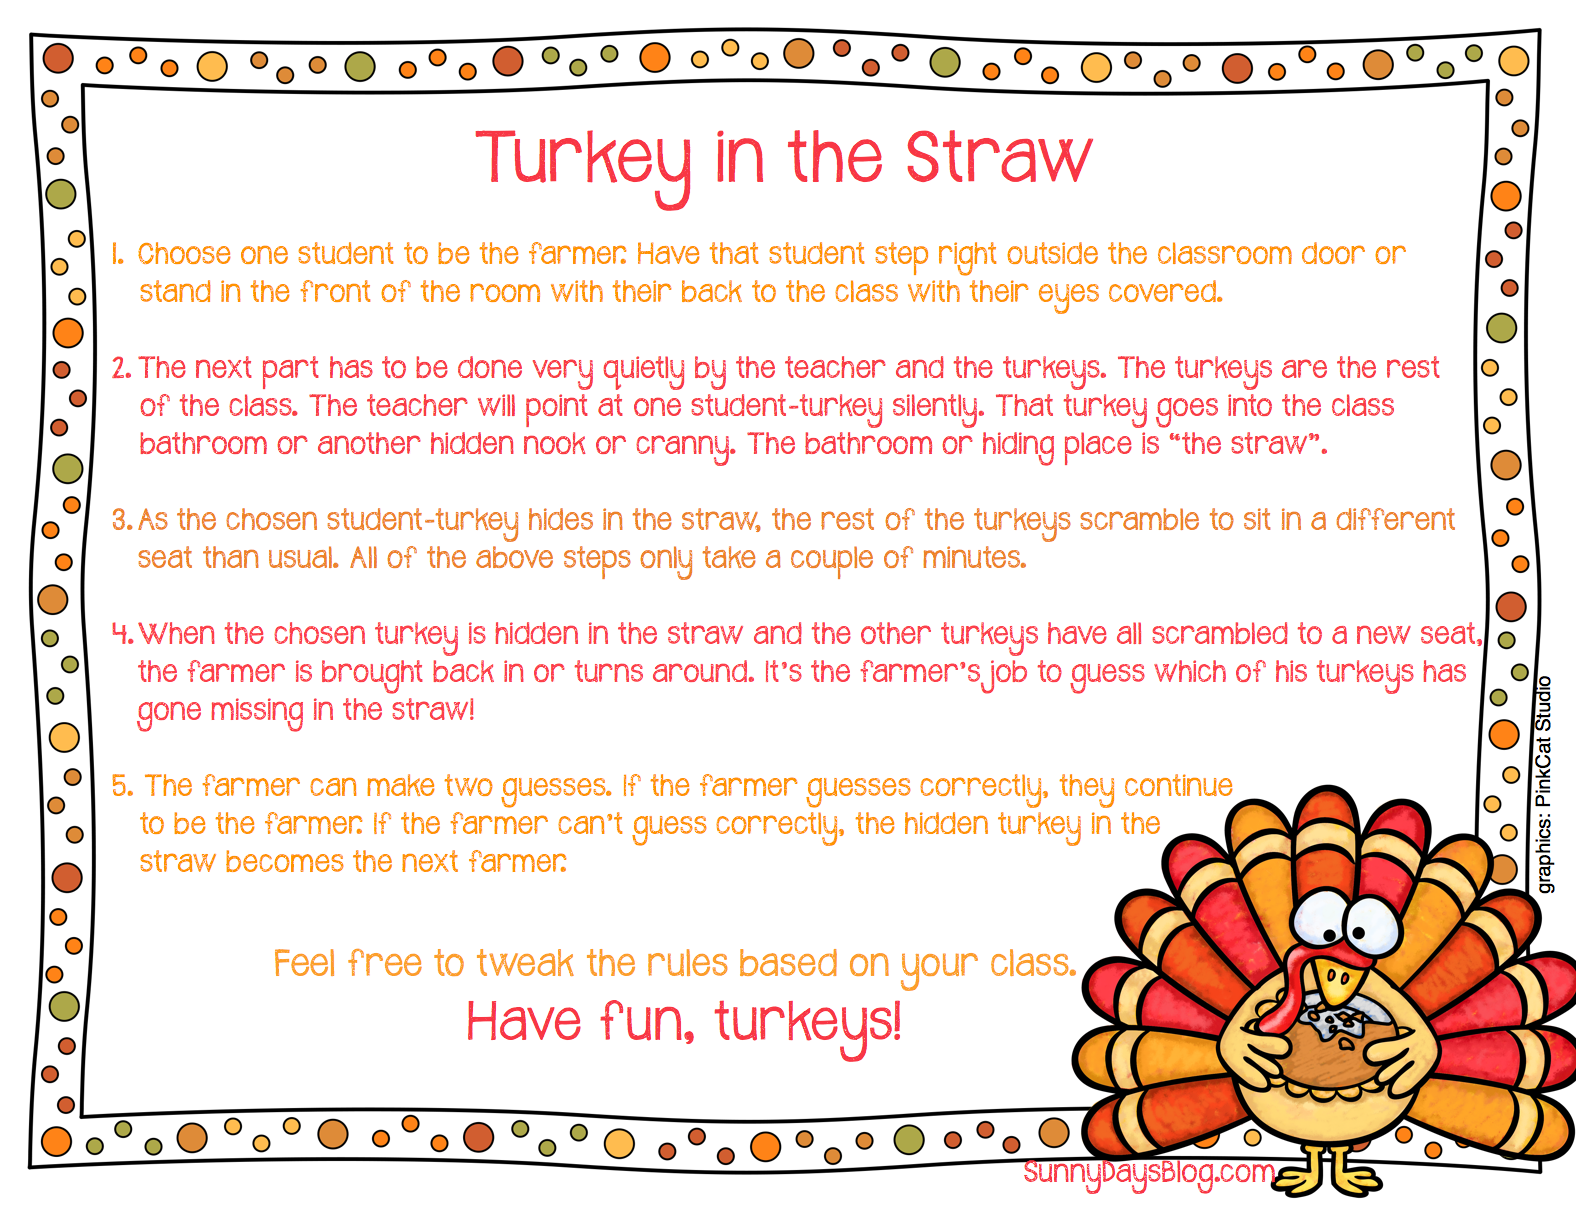 Turkey In The Straw A Game For Indoor Recess Or Brain